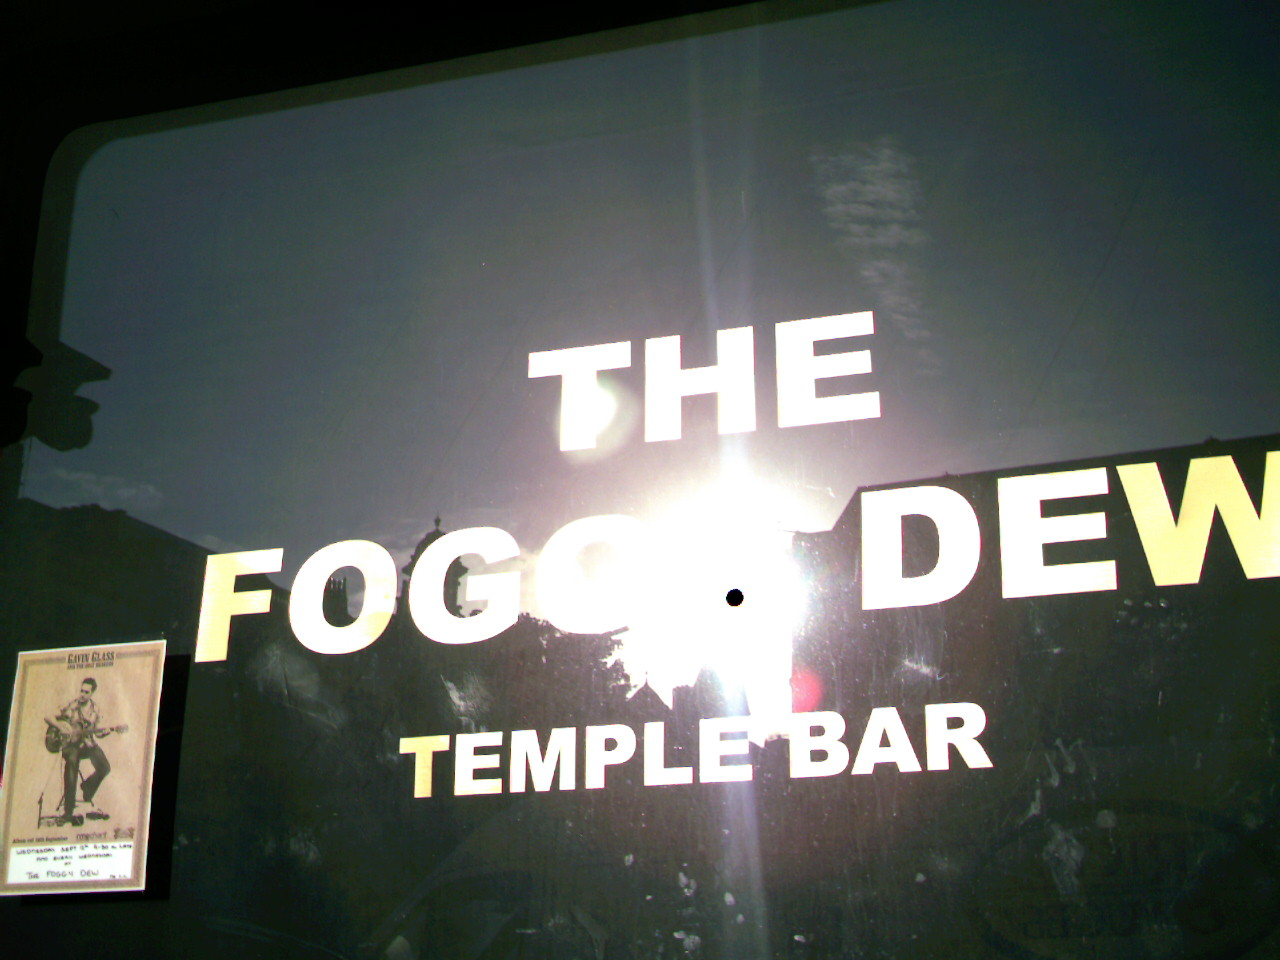 The Foggy Dew Bar, Templebar